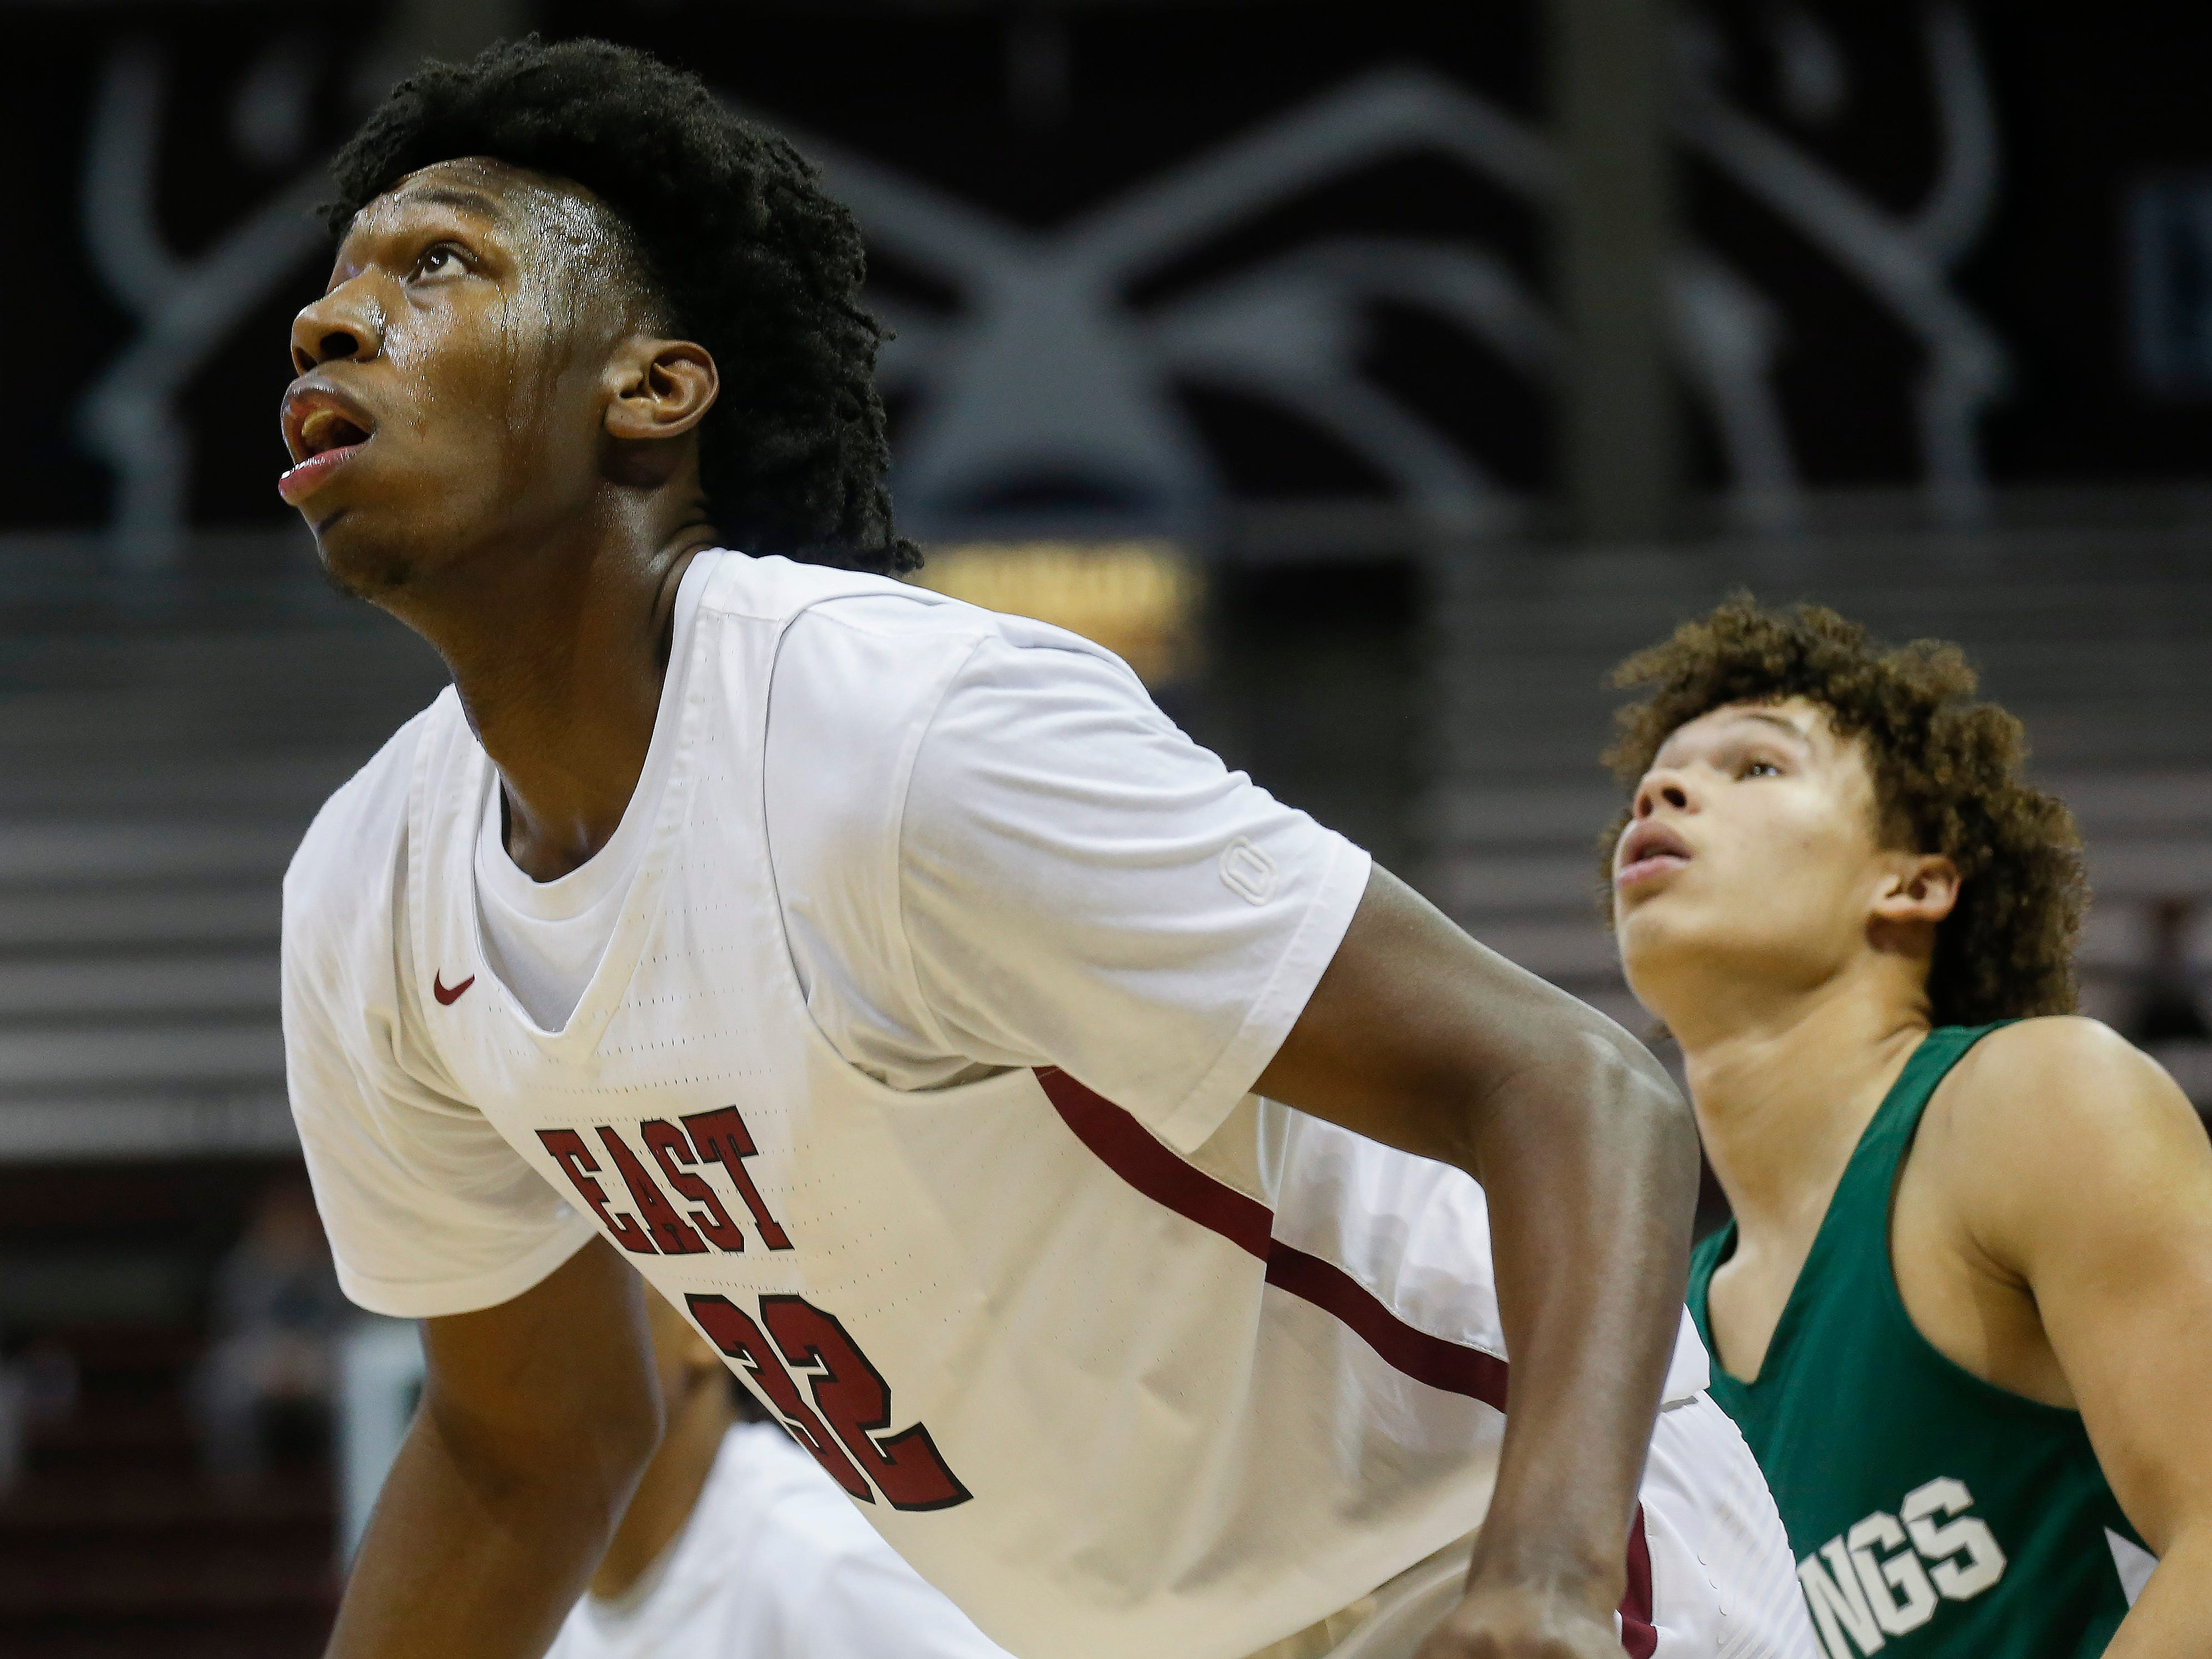 James Wiseman, of Memphis East High School, looks for a rebound during the Mustang's game against Parkview in the Bass Pro Shops Tournament of Champions at JQH Arena on Thursday, Jan. 17, 2019.